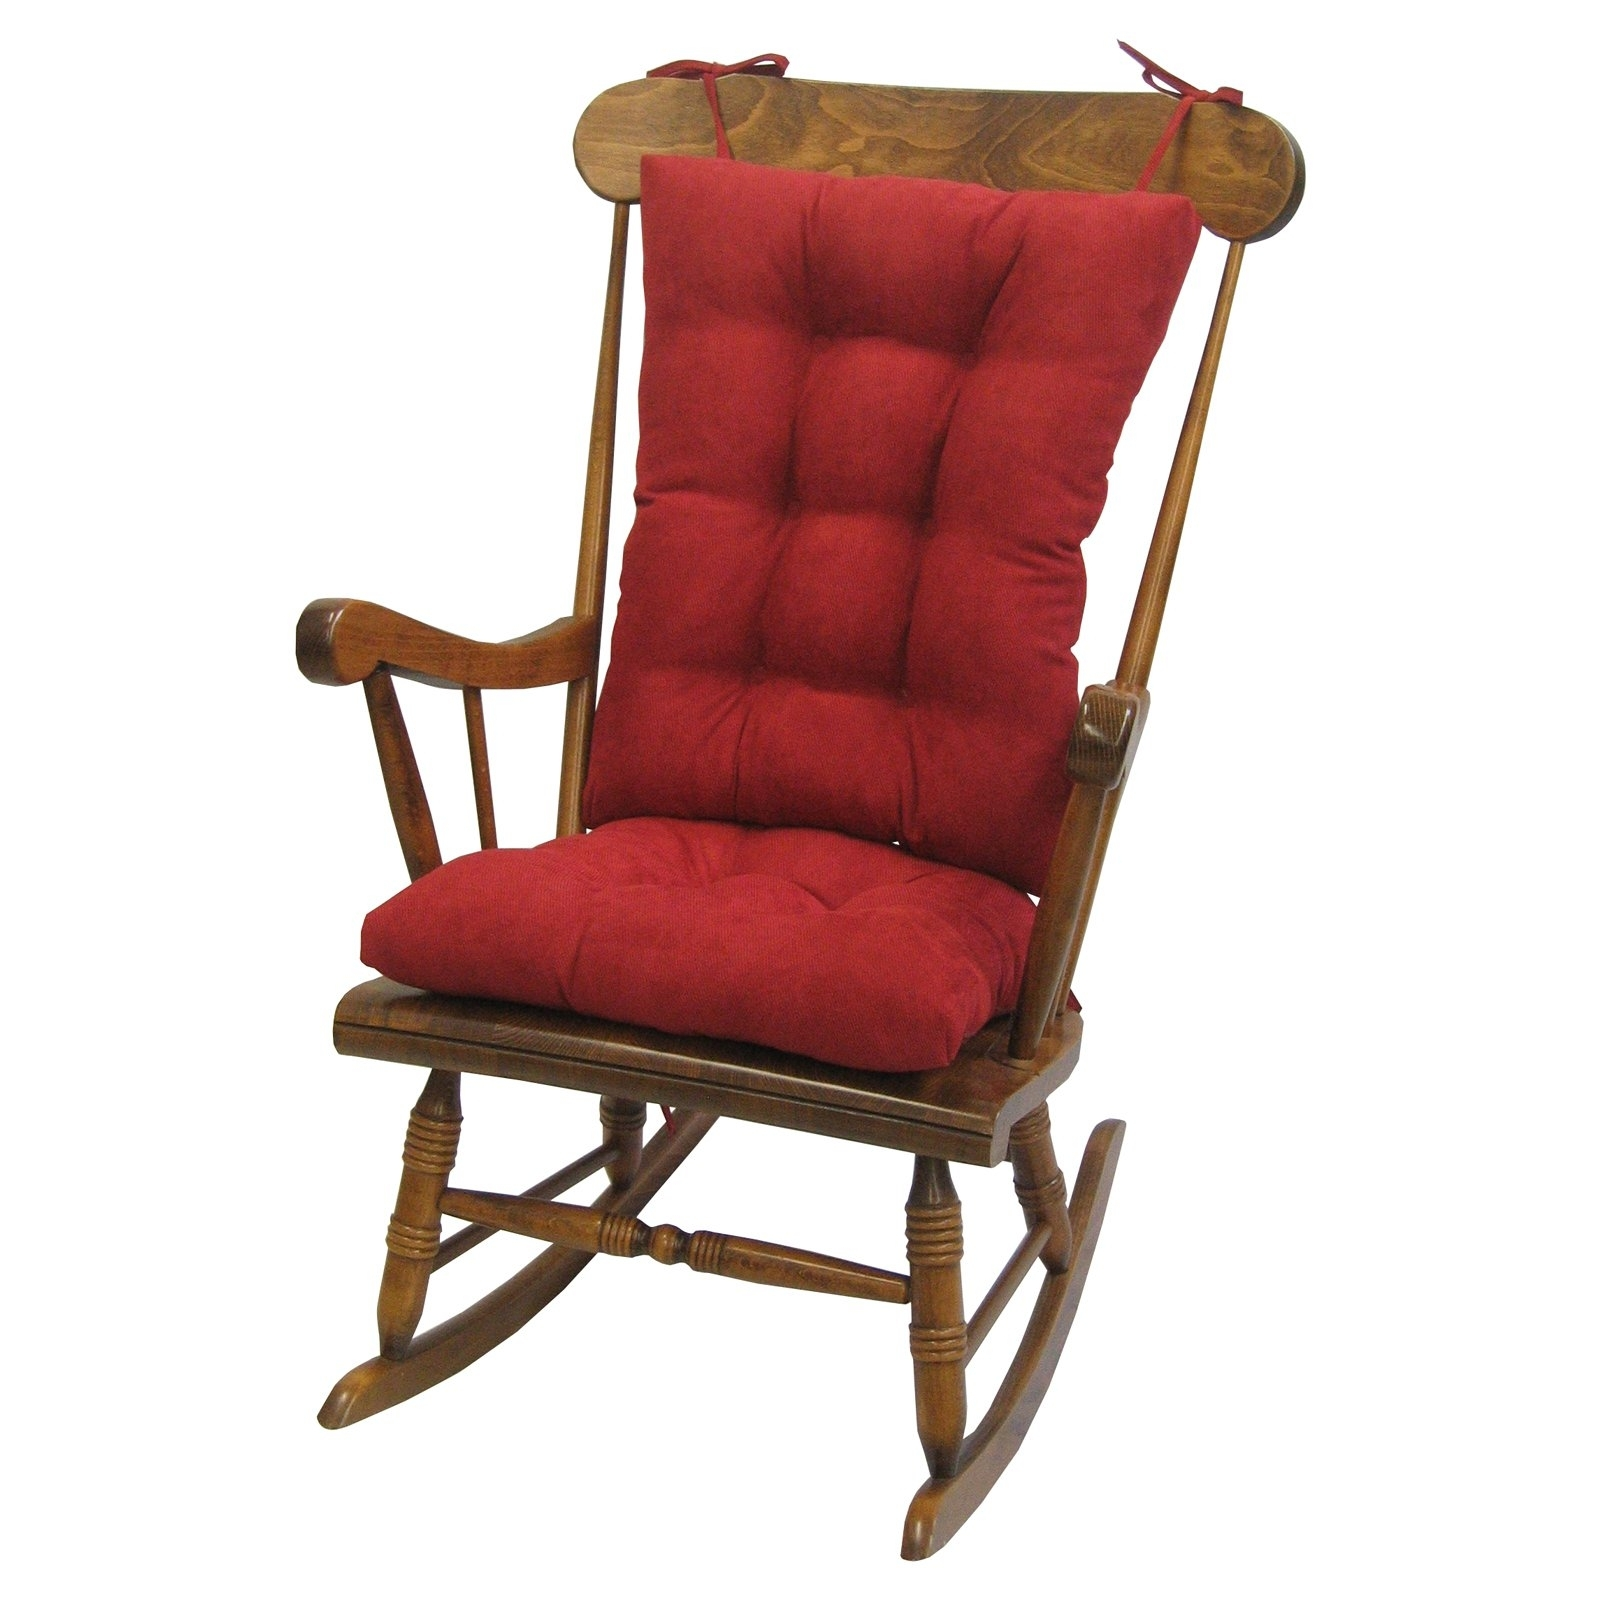 Well Known Rocking Chairs With Cushions Inside Gripper Jumbo Rocking Chair Cushions, Nouveau – Walmart (View 13 of 15)